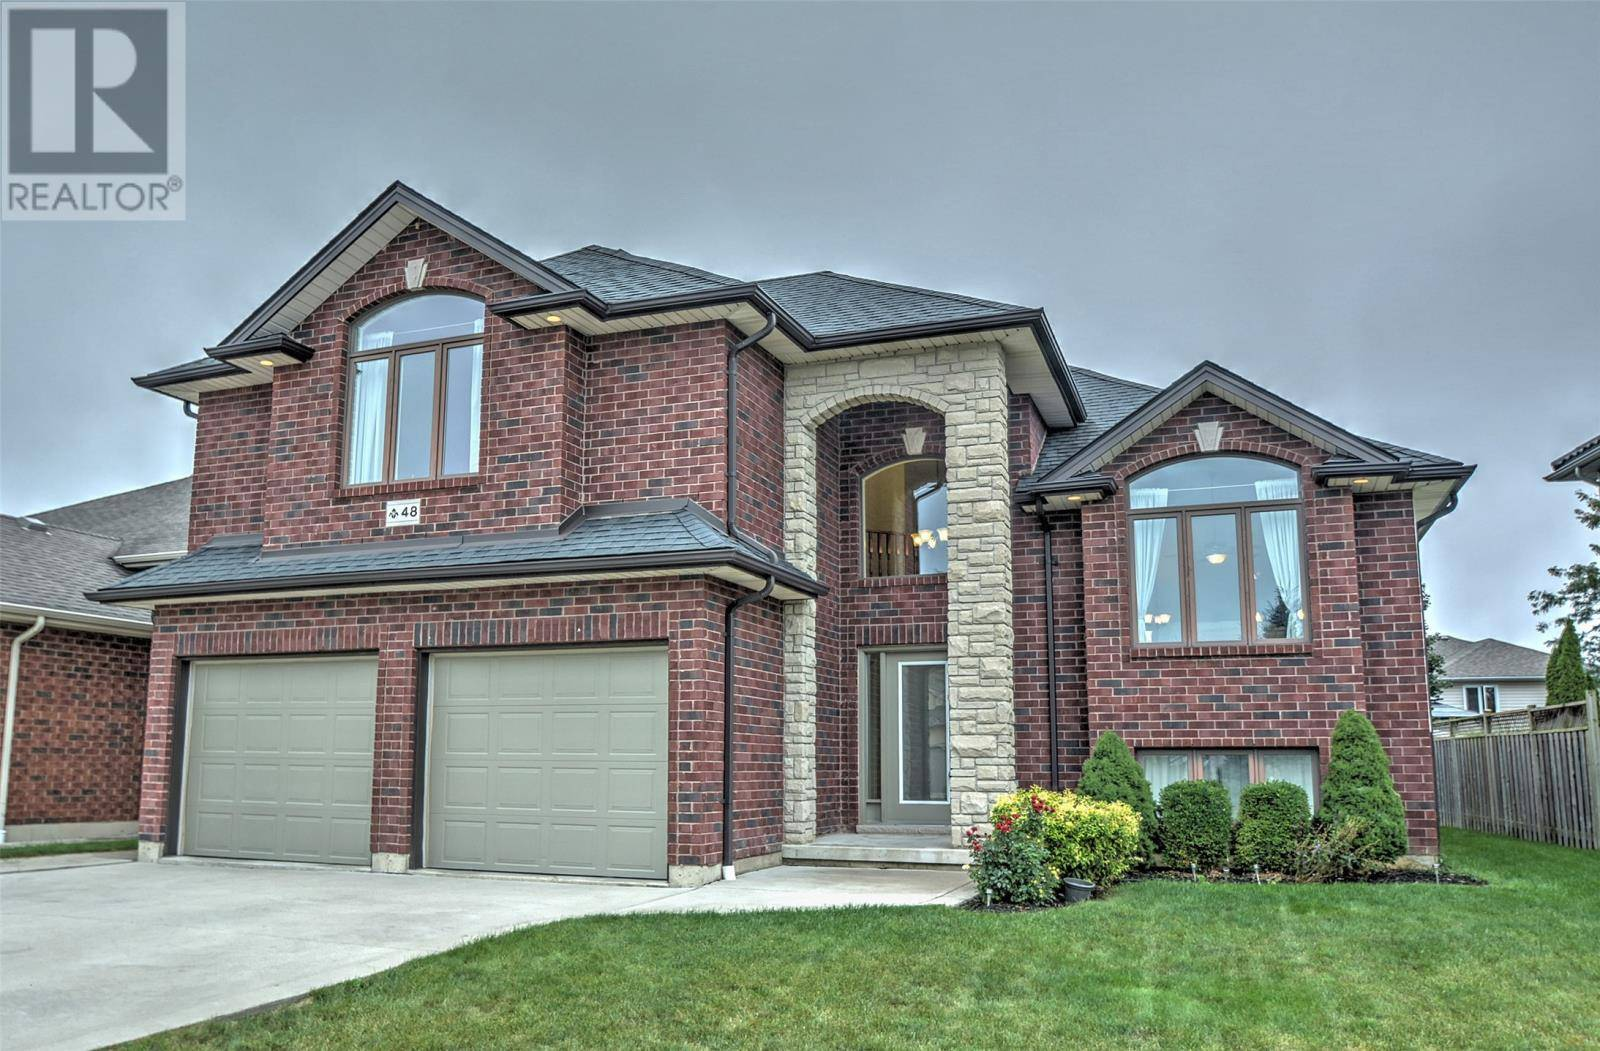 House for sale at 48 Enclave Pl Chatham Ontario - MLS: 19025238